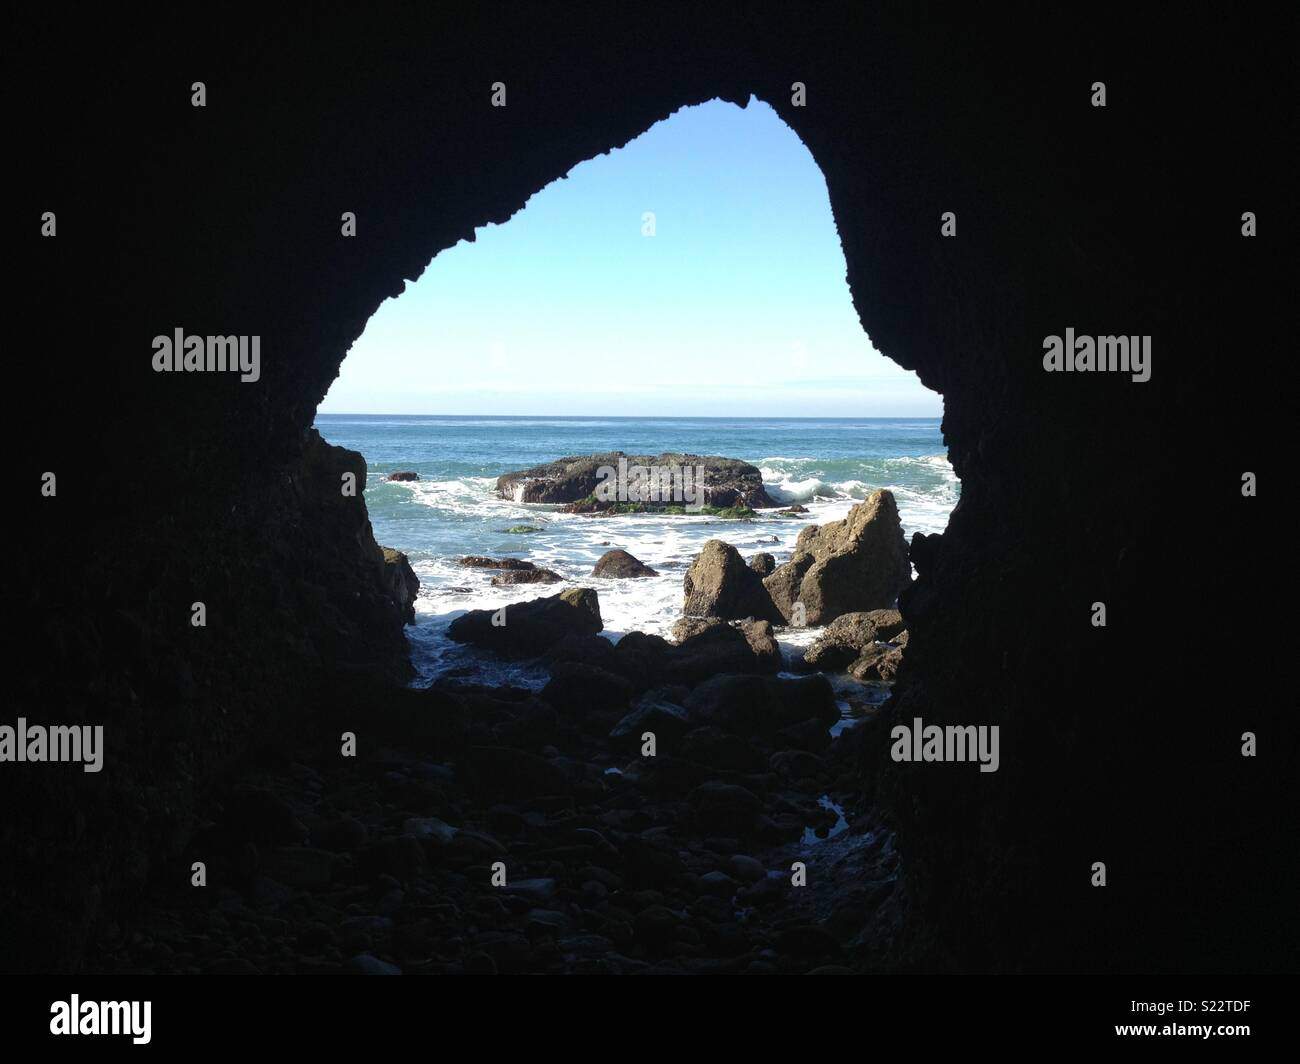 Cave at Dana Point - Stock Image